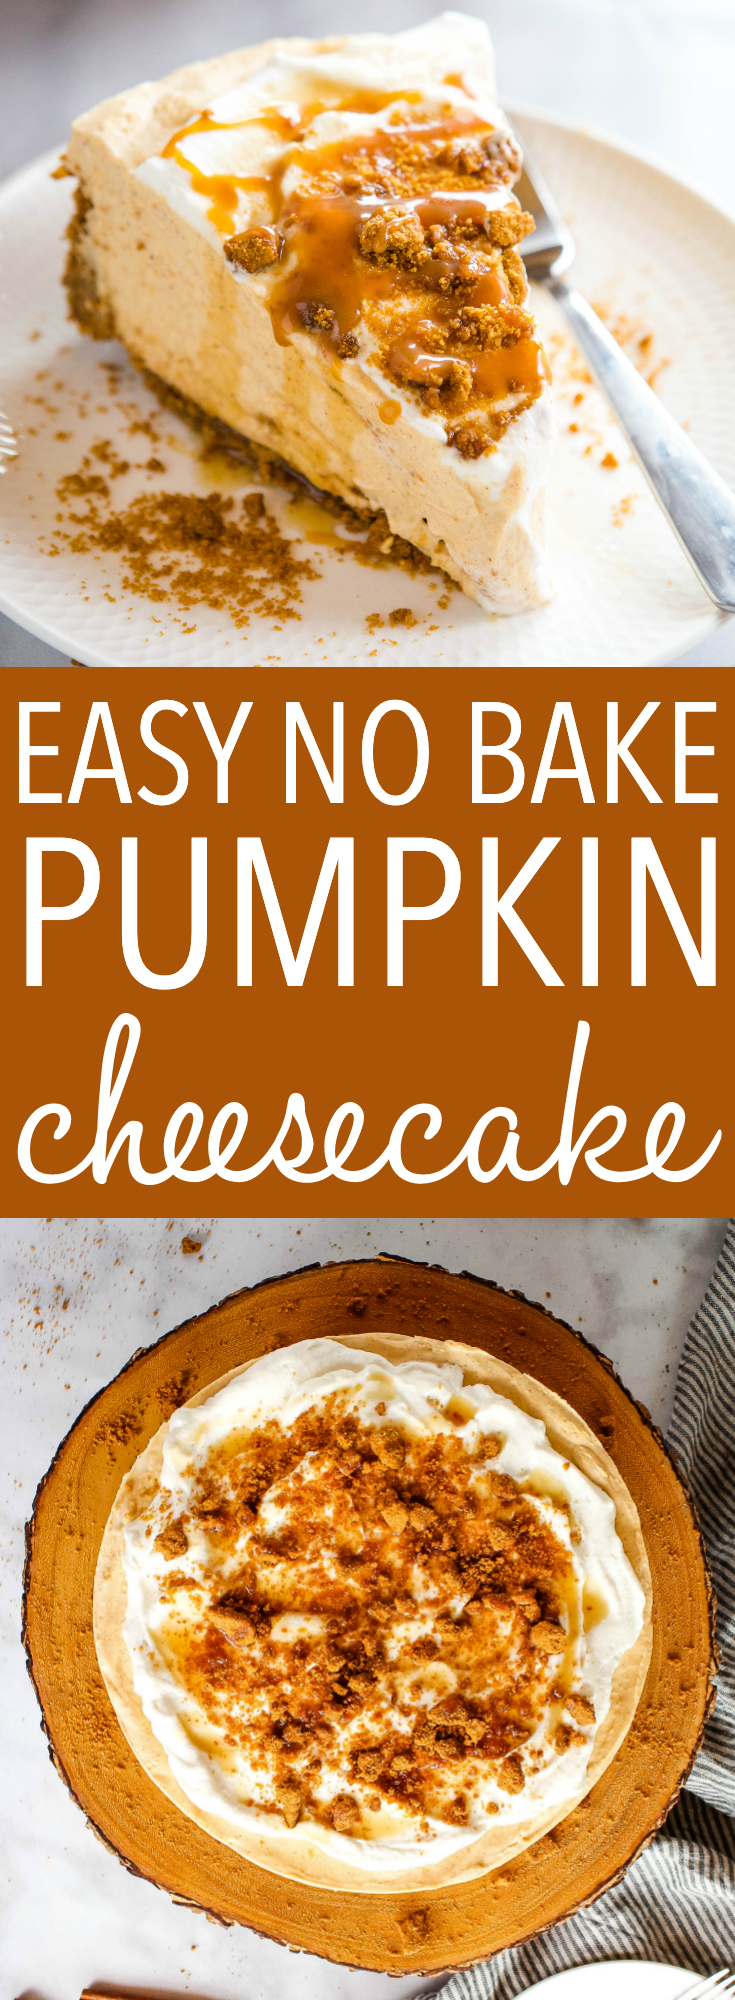 This Easy No Bake Pumpkin Cheesecake is the perfect easy-to-make fall cheesecake dessert that's ultra creamy, silky smooth and delicious and packed with pumpkin and spice! Recipe from thebusybaker.ca! #pumpkinspice #nobakecheesecake #pumpkincheesecake #dessert #fall #thanksgiving #easydessert #nobakedessert #harvest #pumpkin #sweet via @busybakerblog